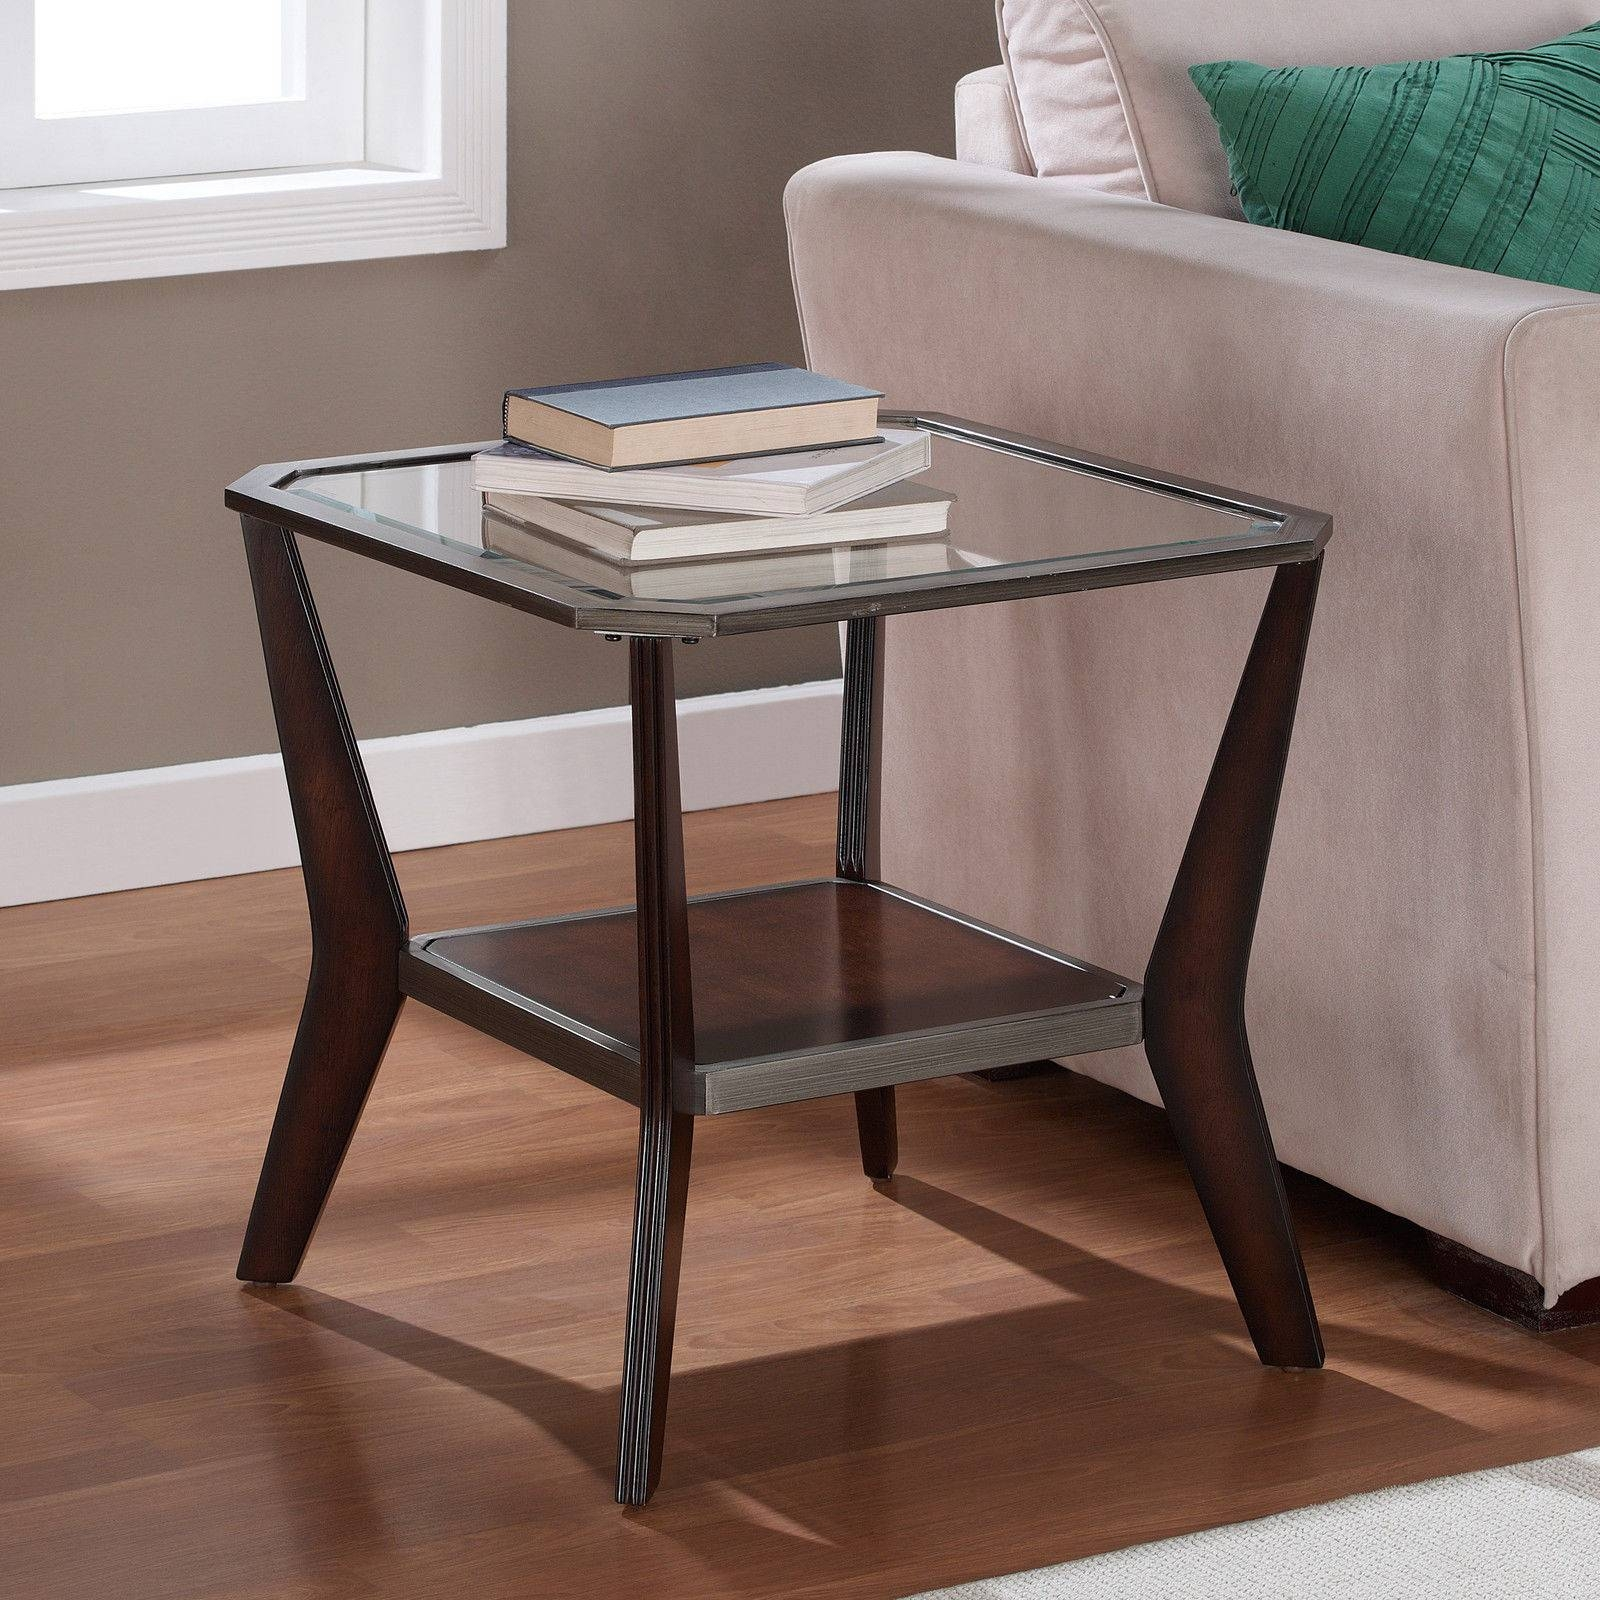 30 Best Collection of Retro Glass Coffee Tables